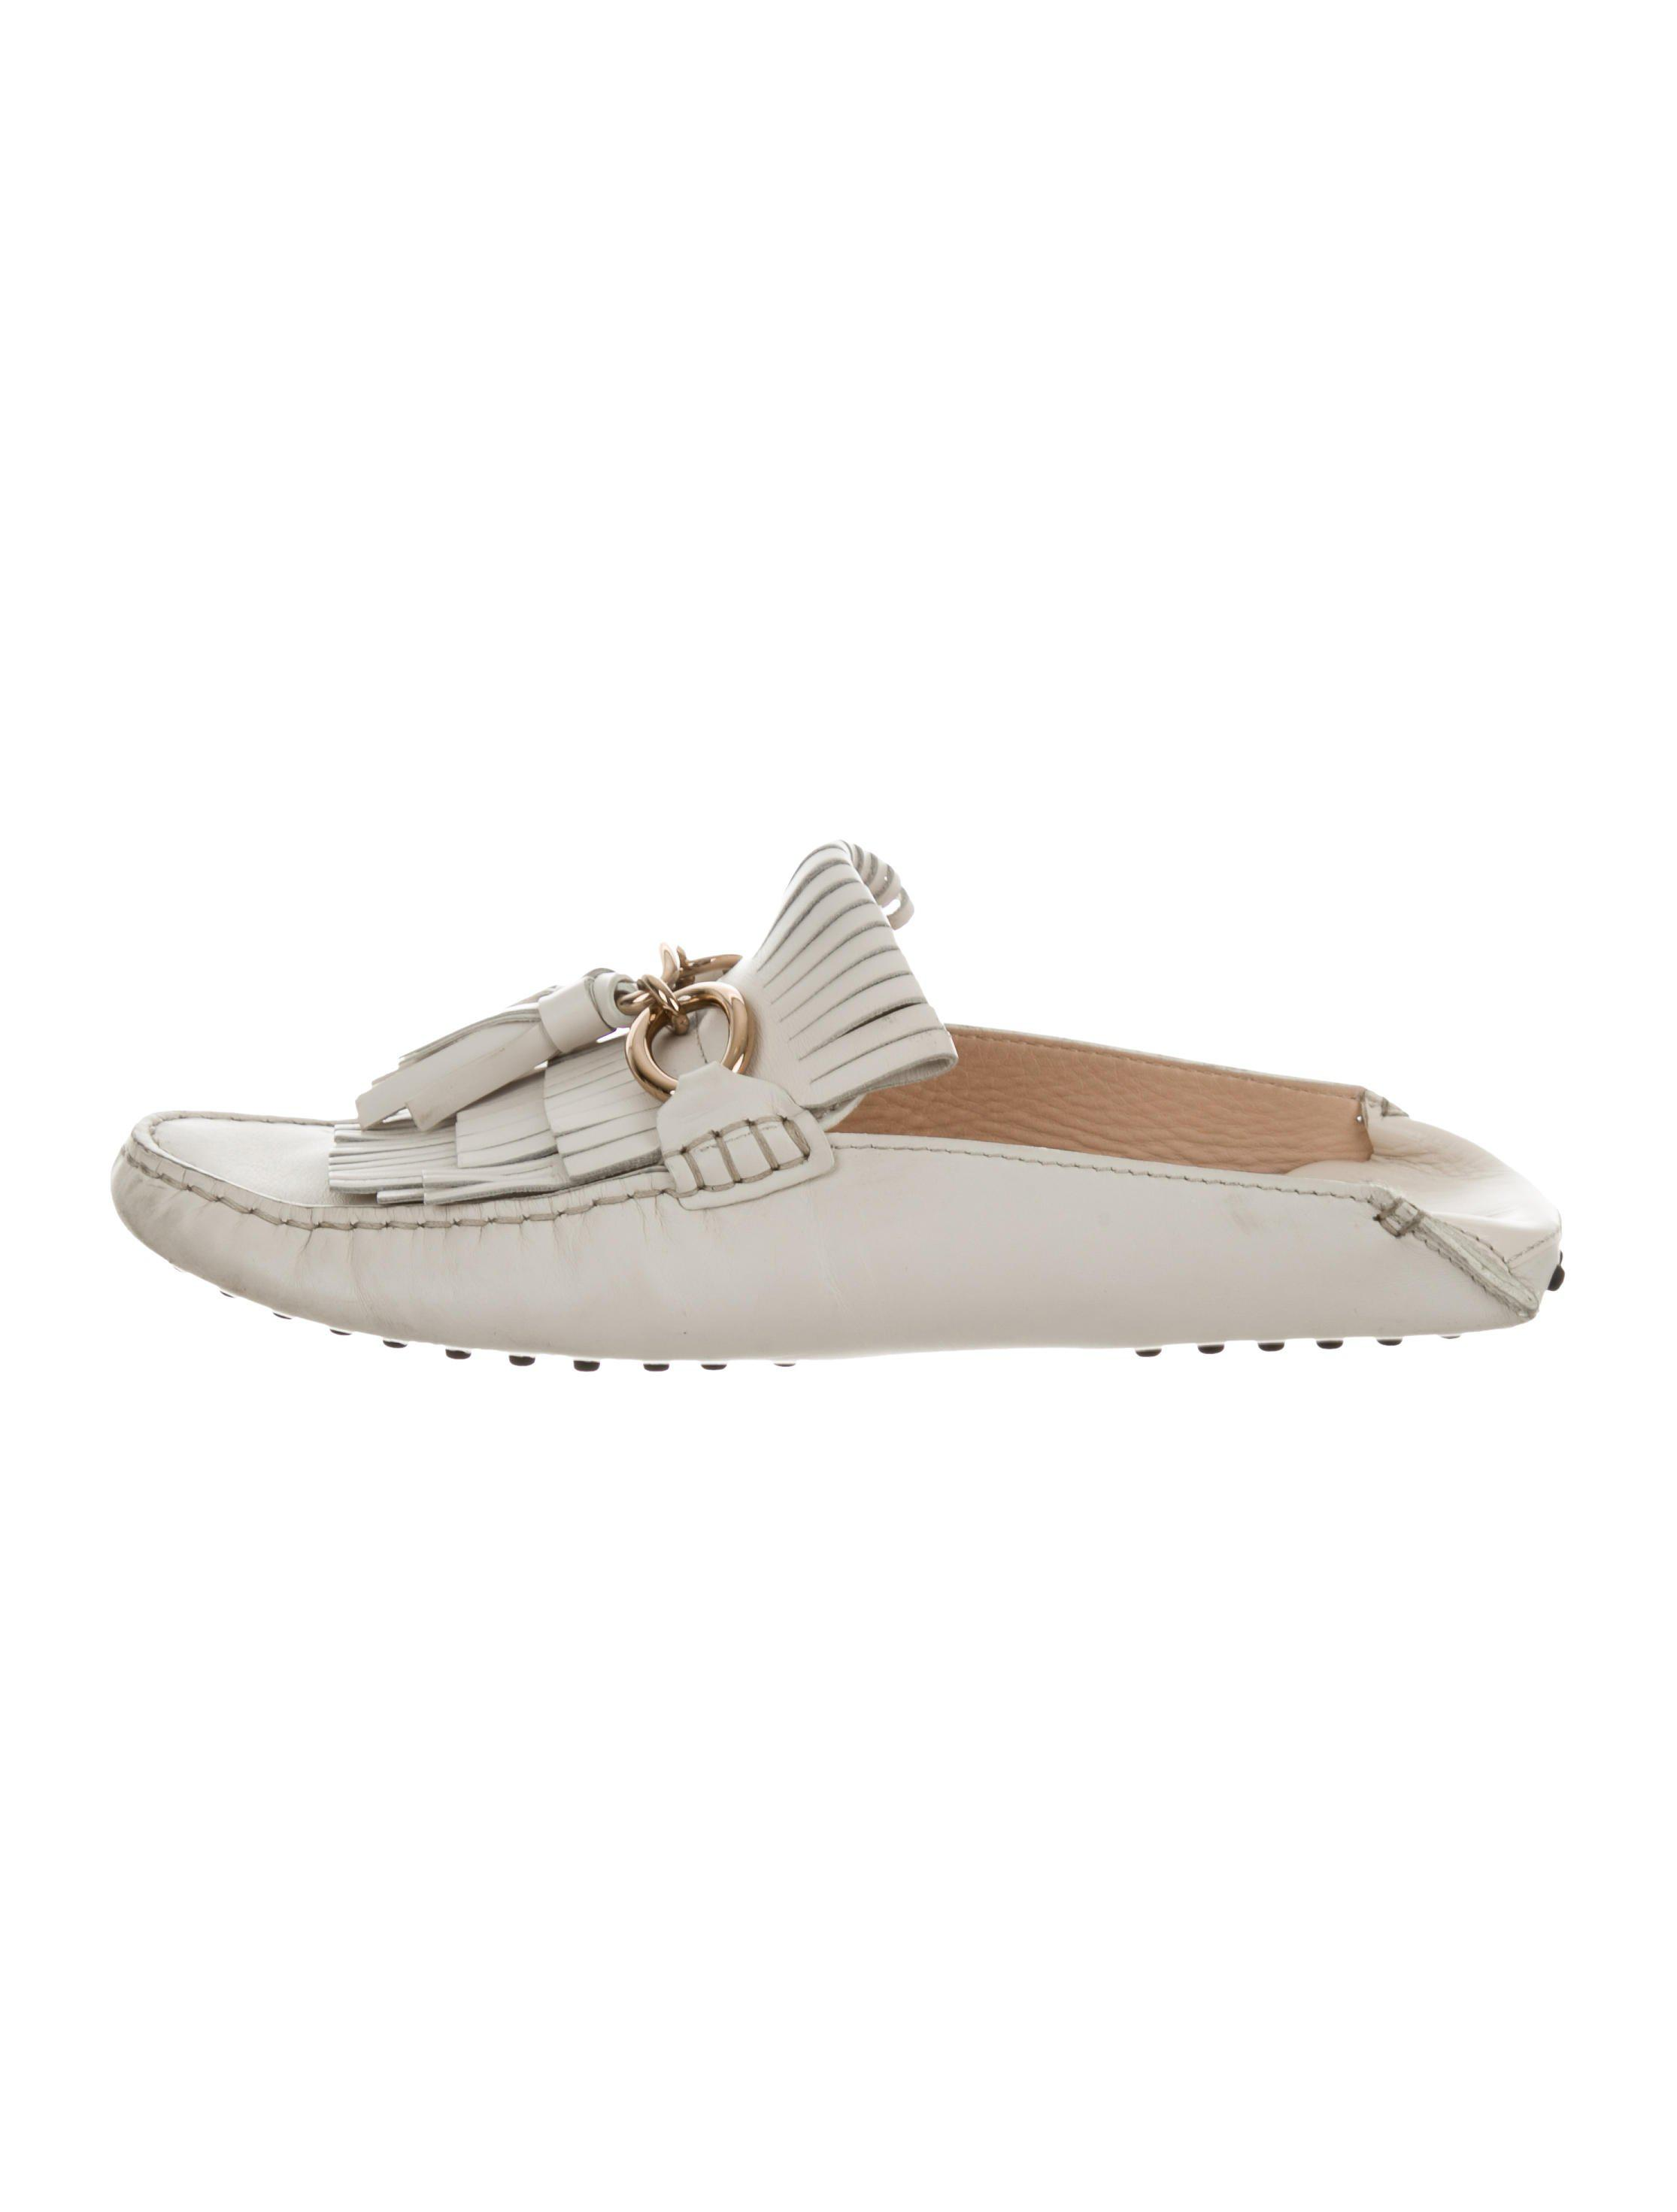 Tod's Leather Kiltie Mules best store to get cheap price LppT6R